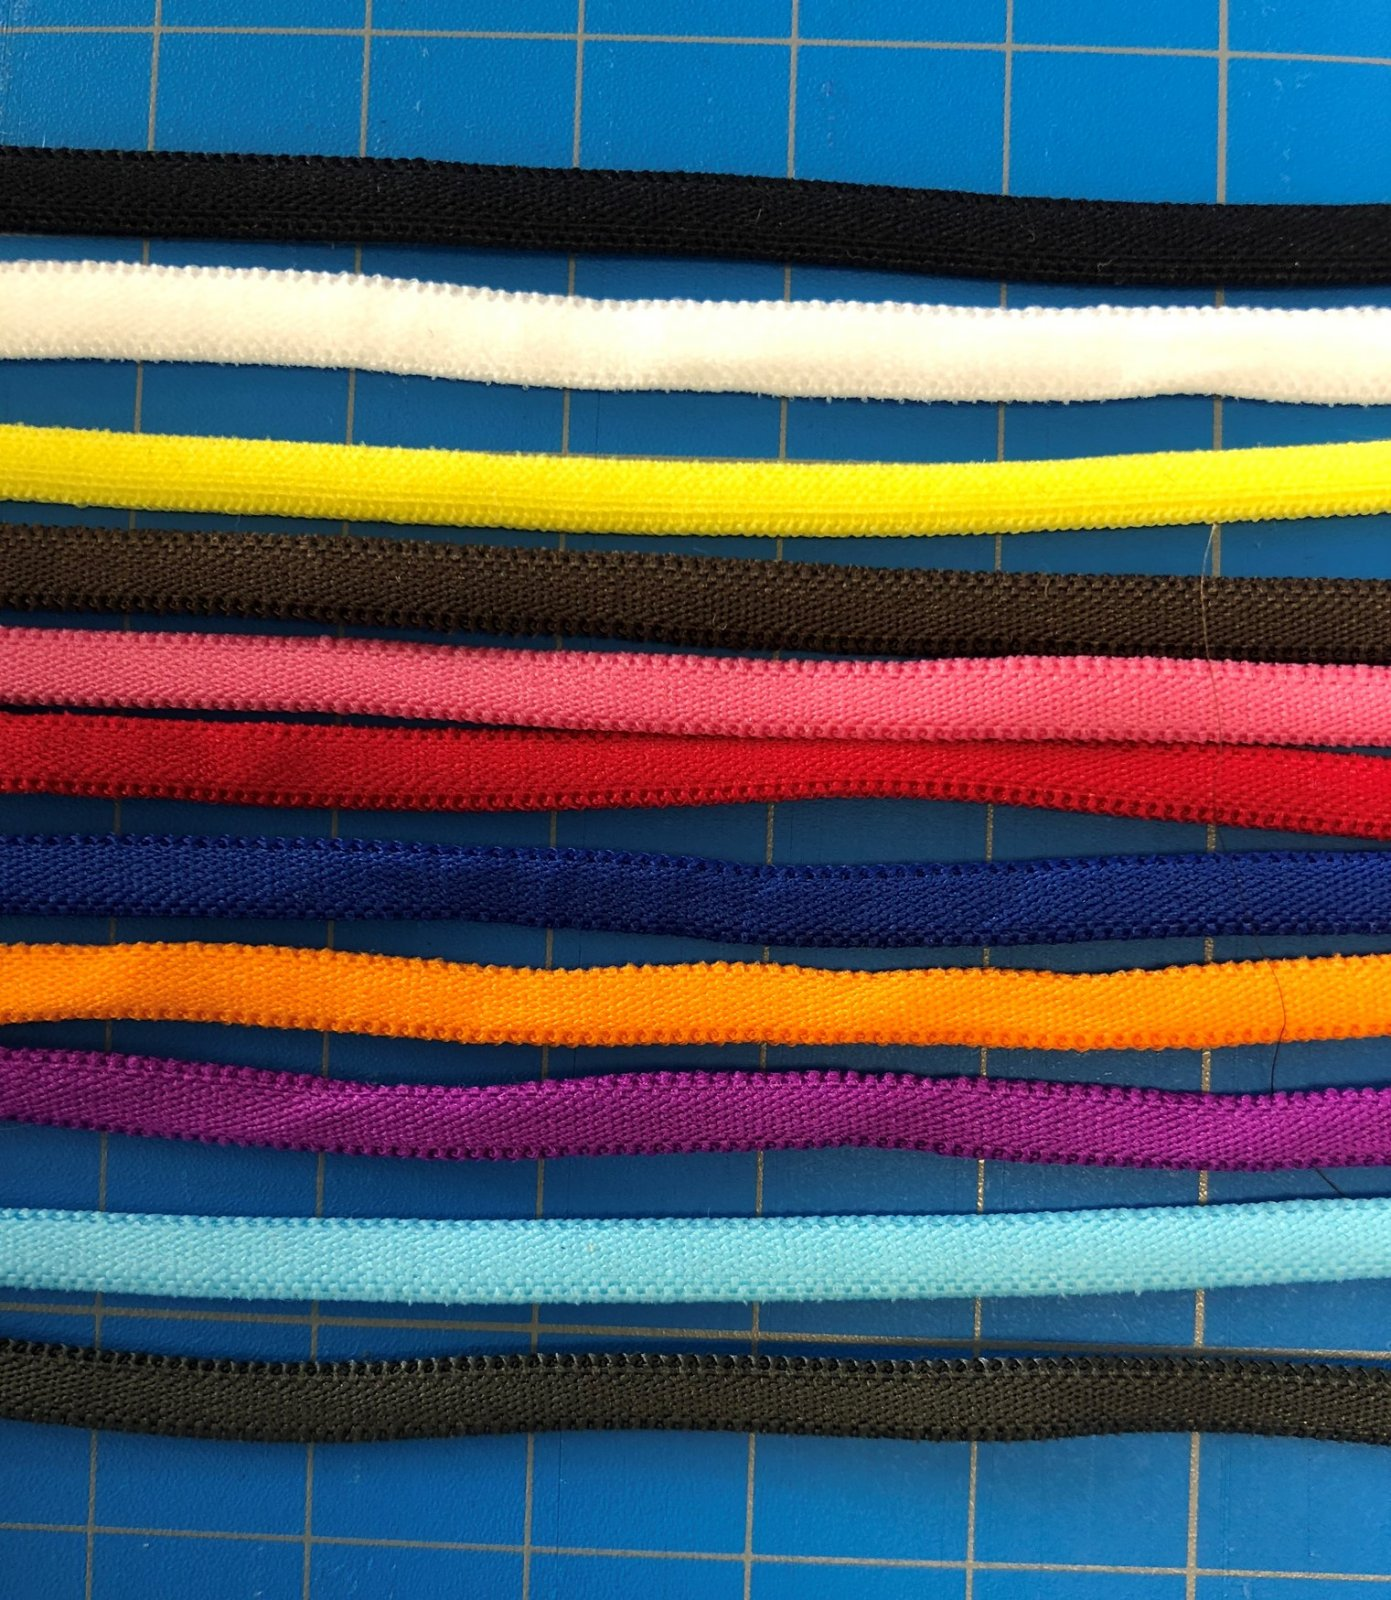 Banded Stretch Elastic - 1/6 in. wide - 5 yards - 12 COLORS